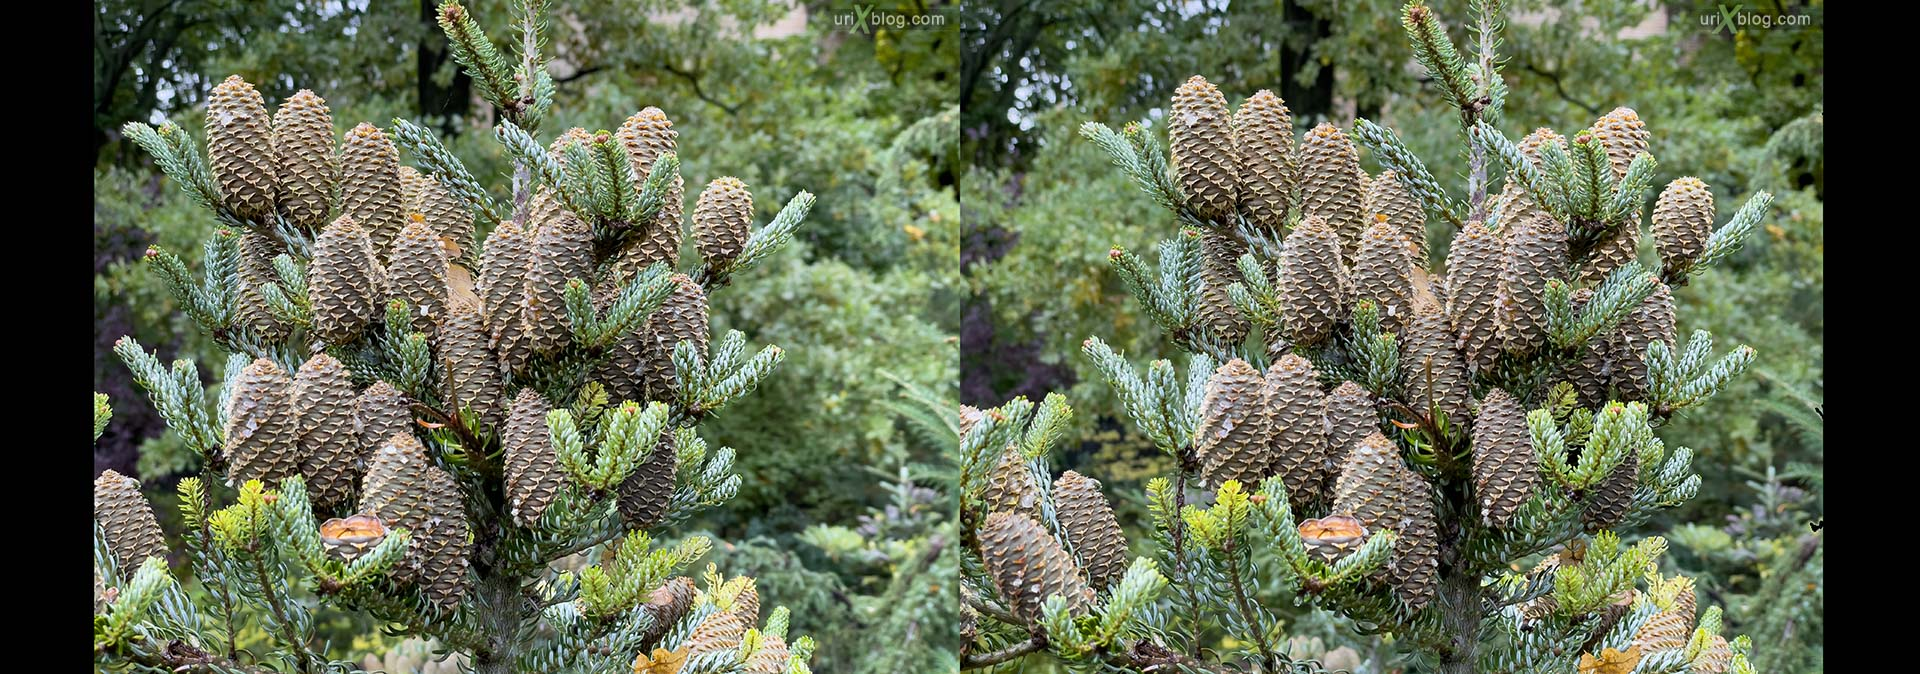 cones, tree, Pharmaceutical Garden, Russia, Moscow, 3D, stereo pair, cross-eyed, crossview, cross view stereo pair, stereoscopic